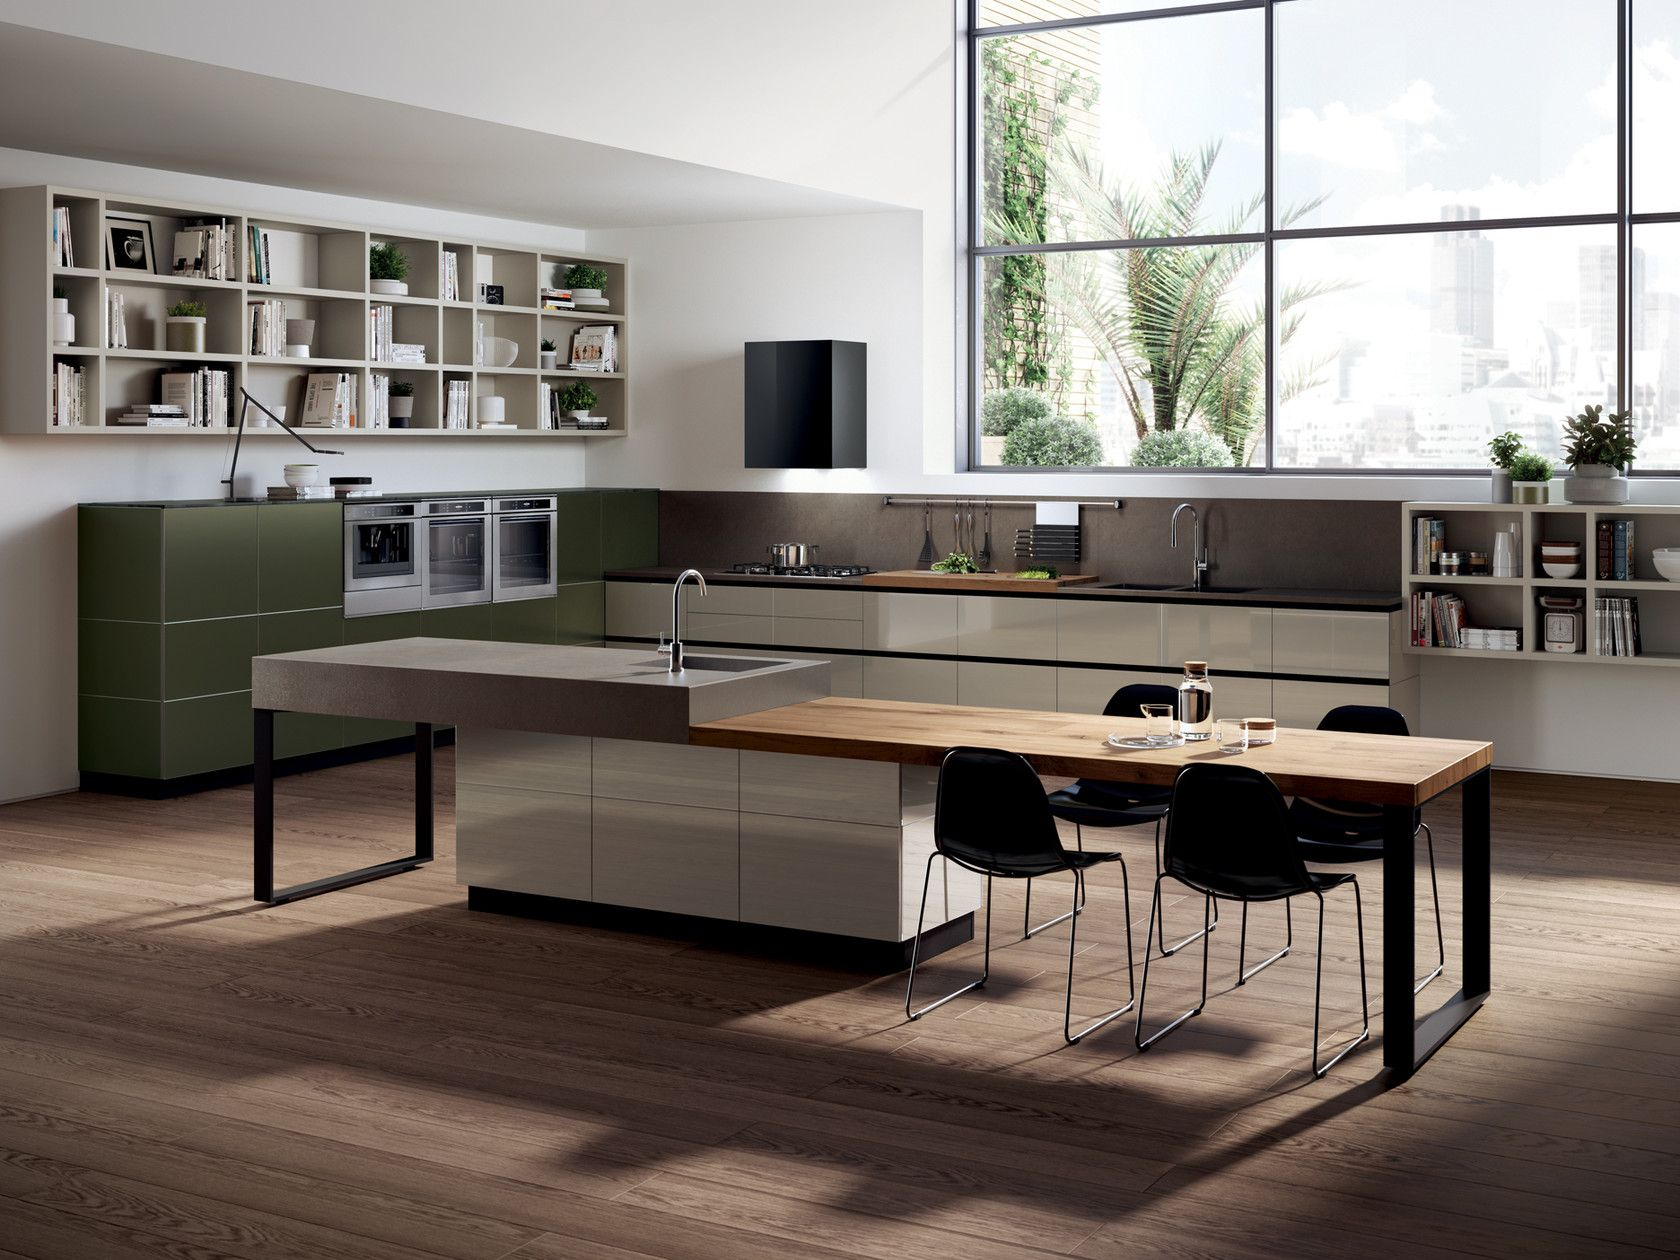 Fitted Kitchen Tetrix By Scavolini Interior Design Kitchen Minimalist Kitchen Design Kitchen Interior